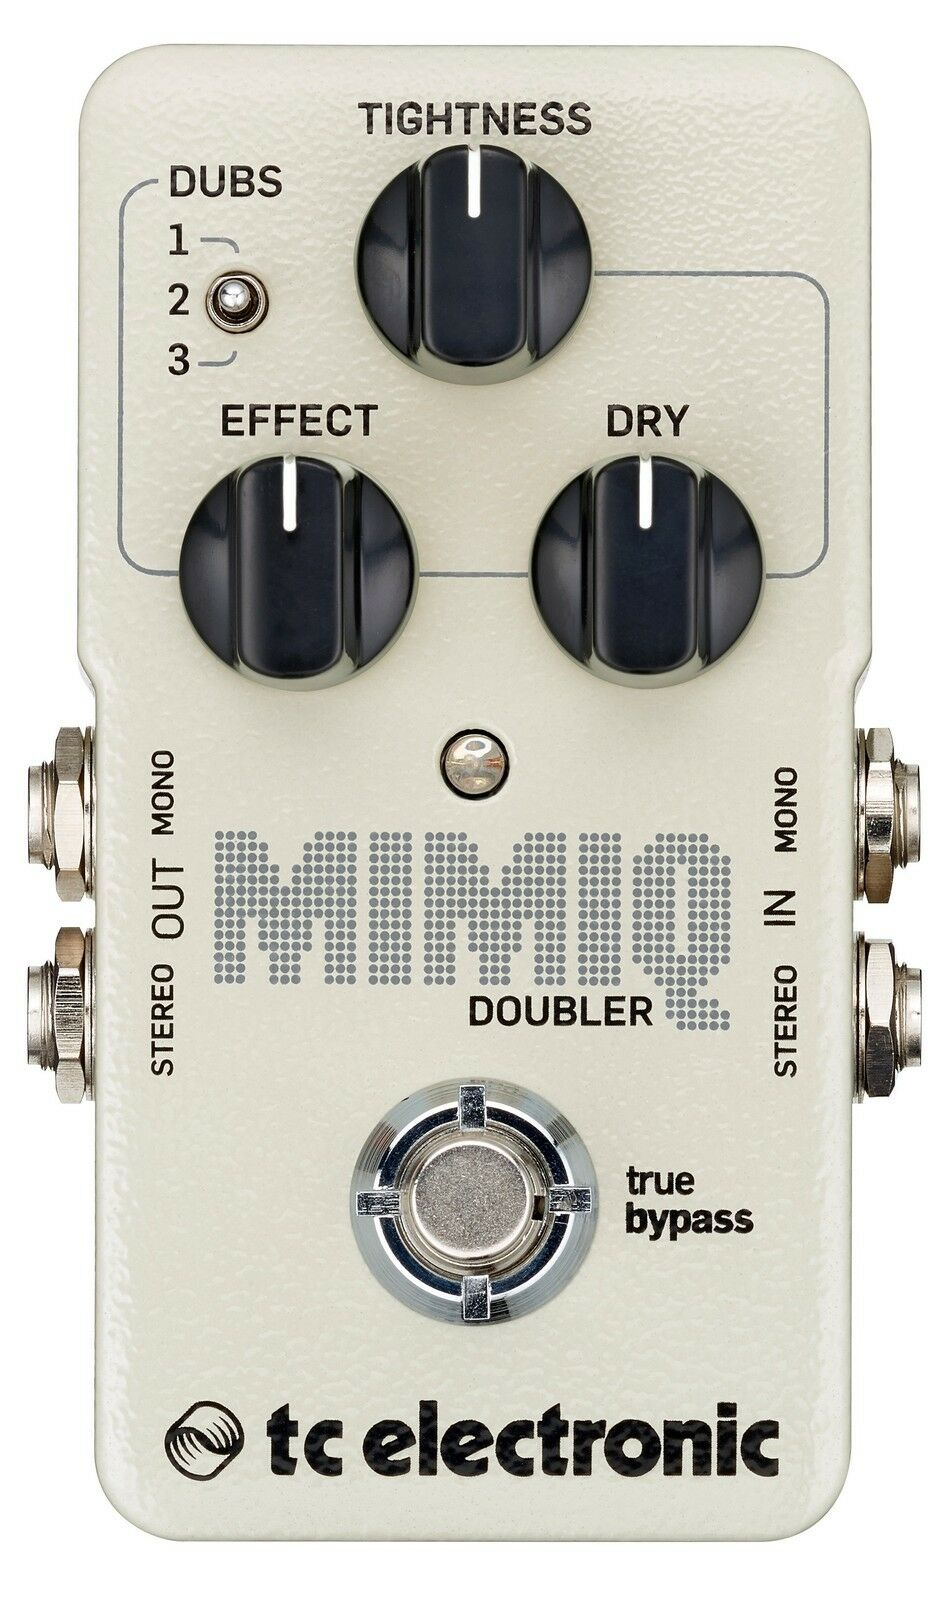 New TC Electronic Mimiq Doubler Guitar Effects Pedal